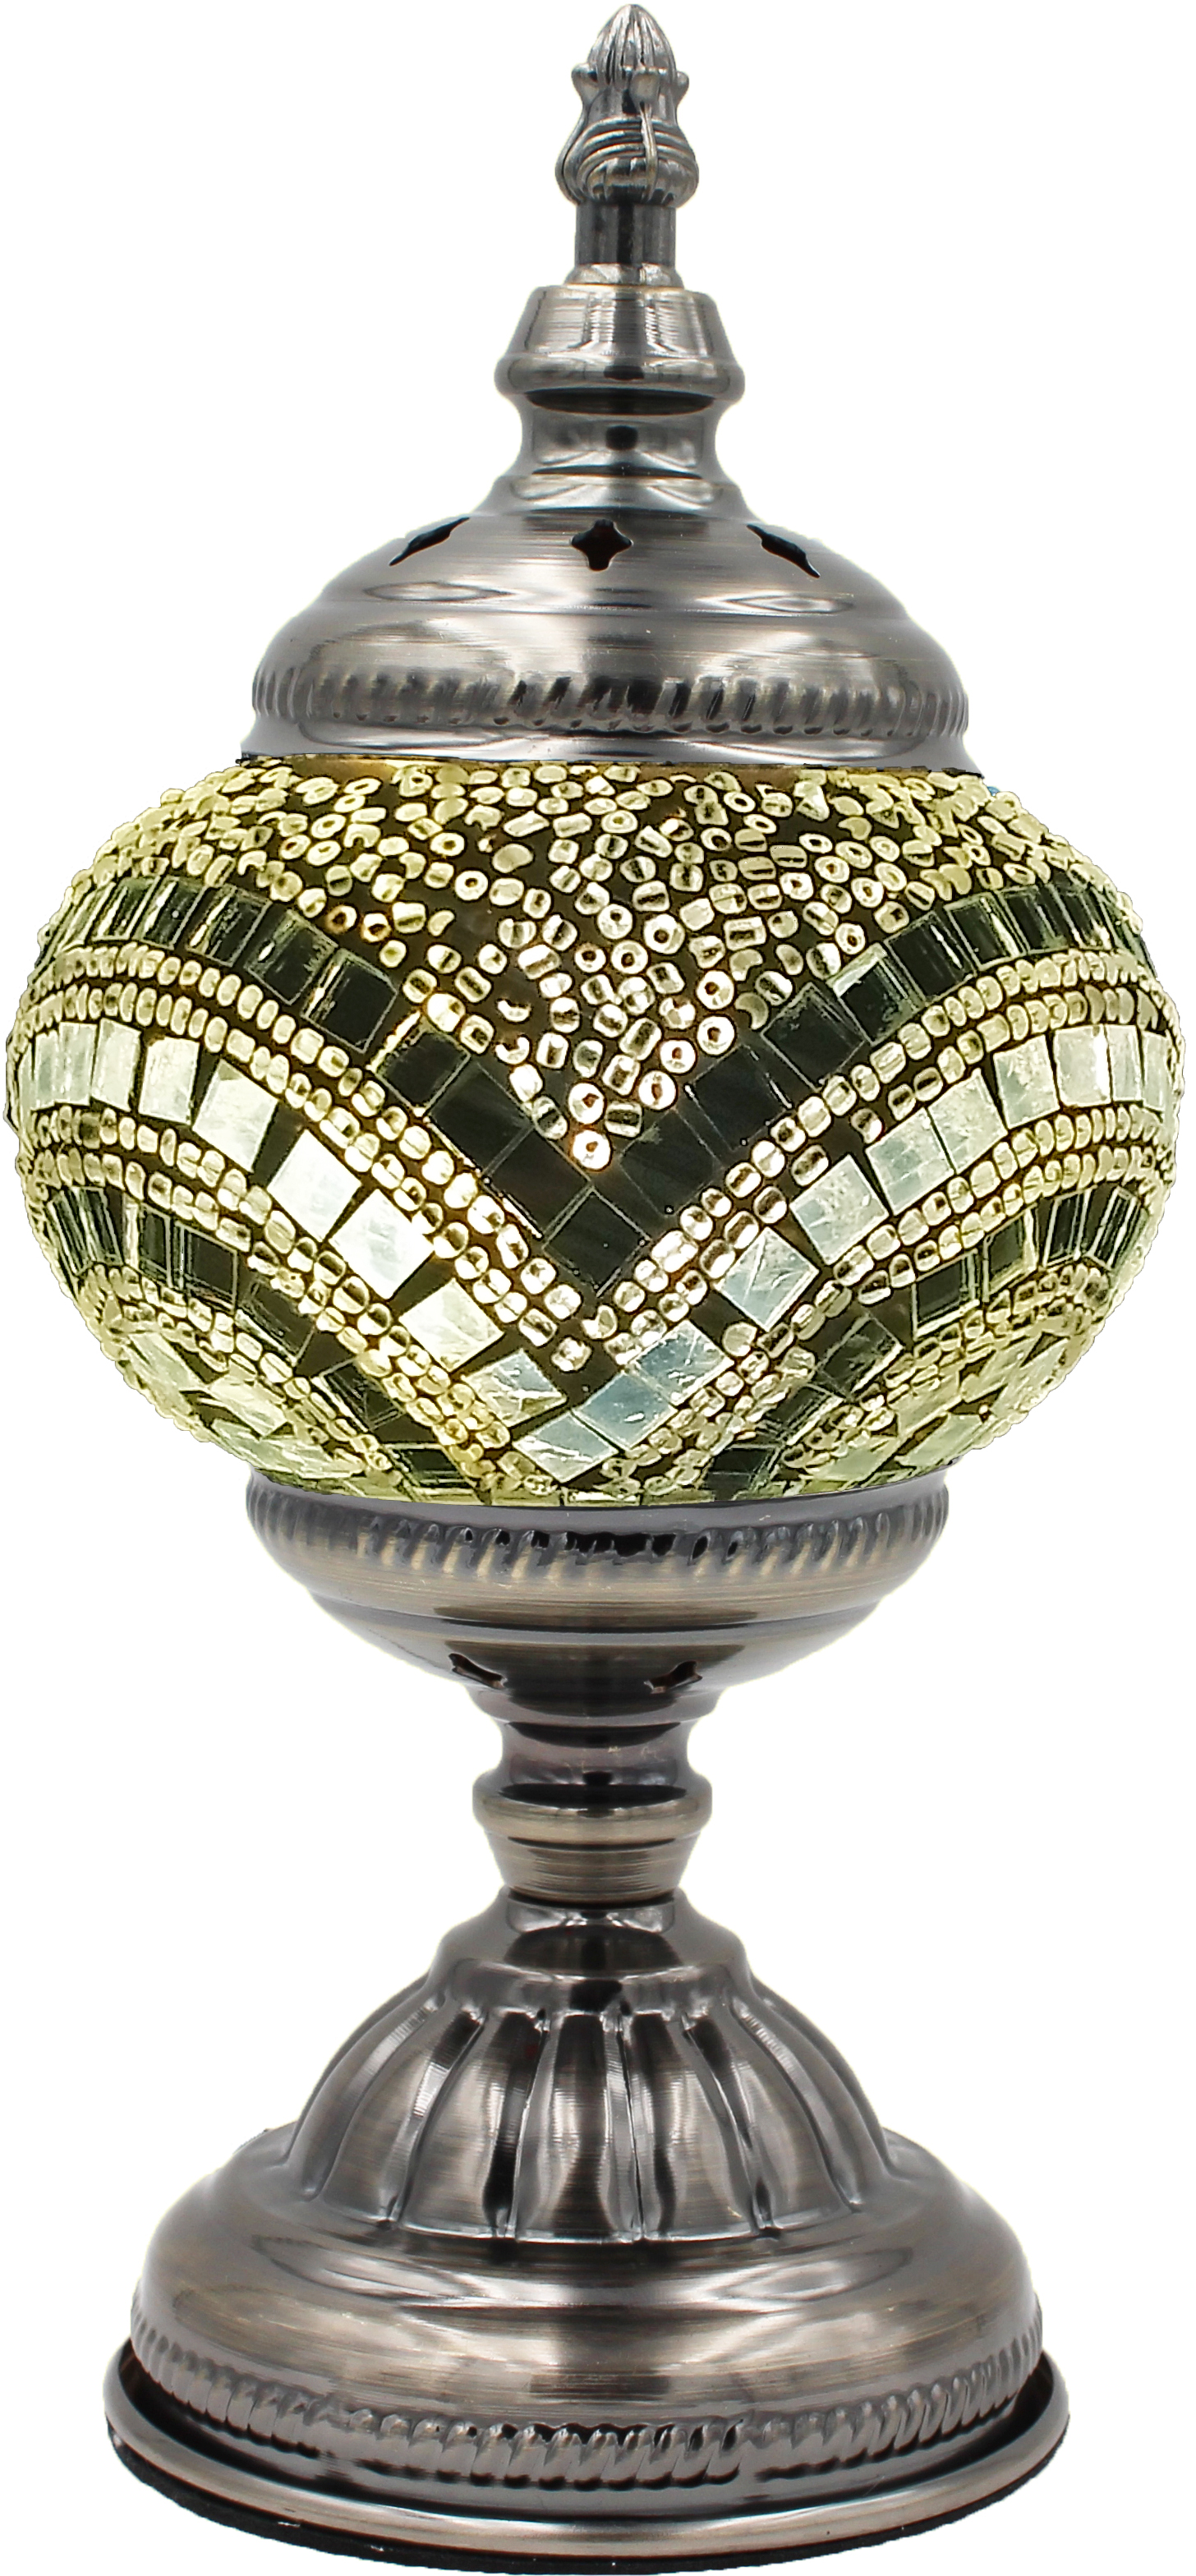 Hand Made Mosaic Glass Lamp - Without Bulb (011)